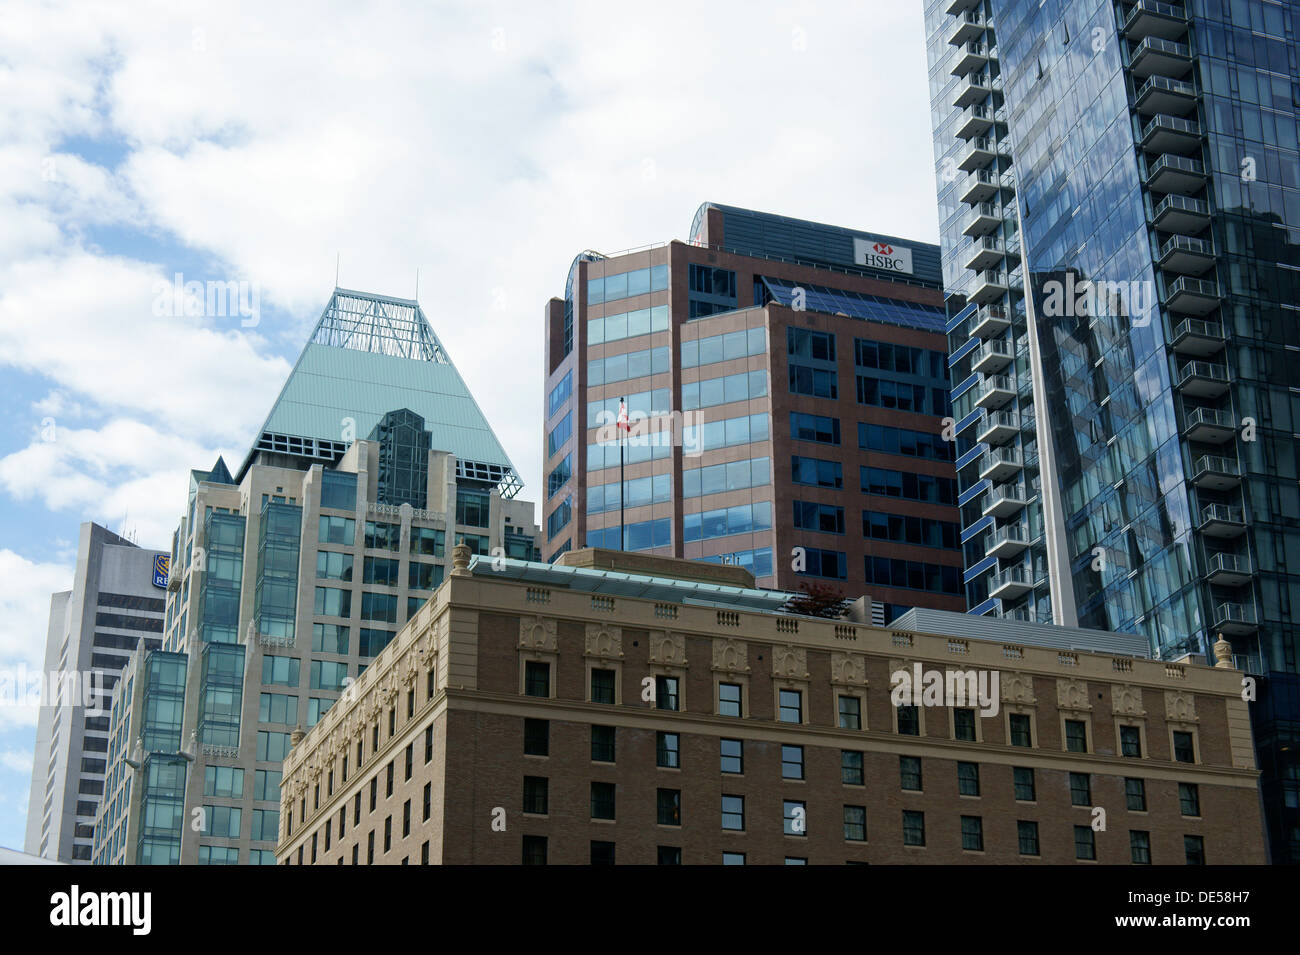 Hotel Georgia and glass office towers in downtown Vancouver, BC, Canada - Stock Image